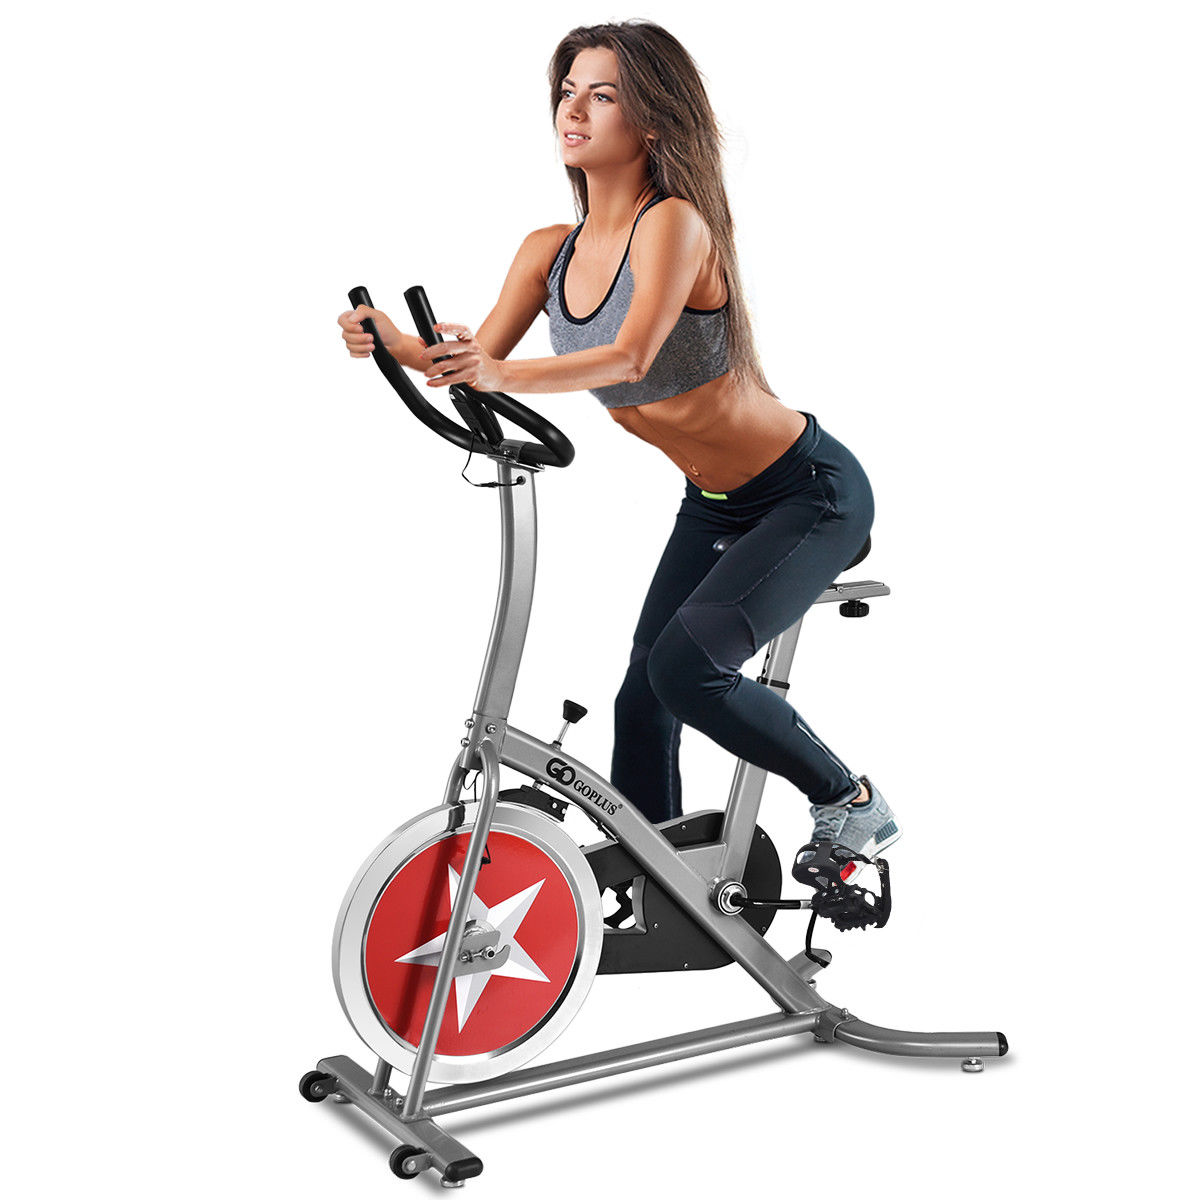 Bicycle Cycling Exercise Bike Adjustable Gym Fitness Cardio Workout Home |  Walmart Canada